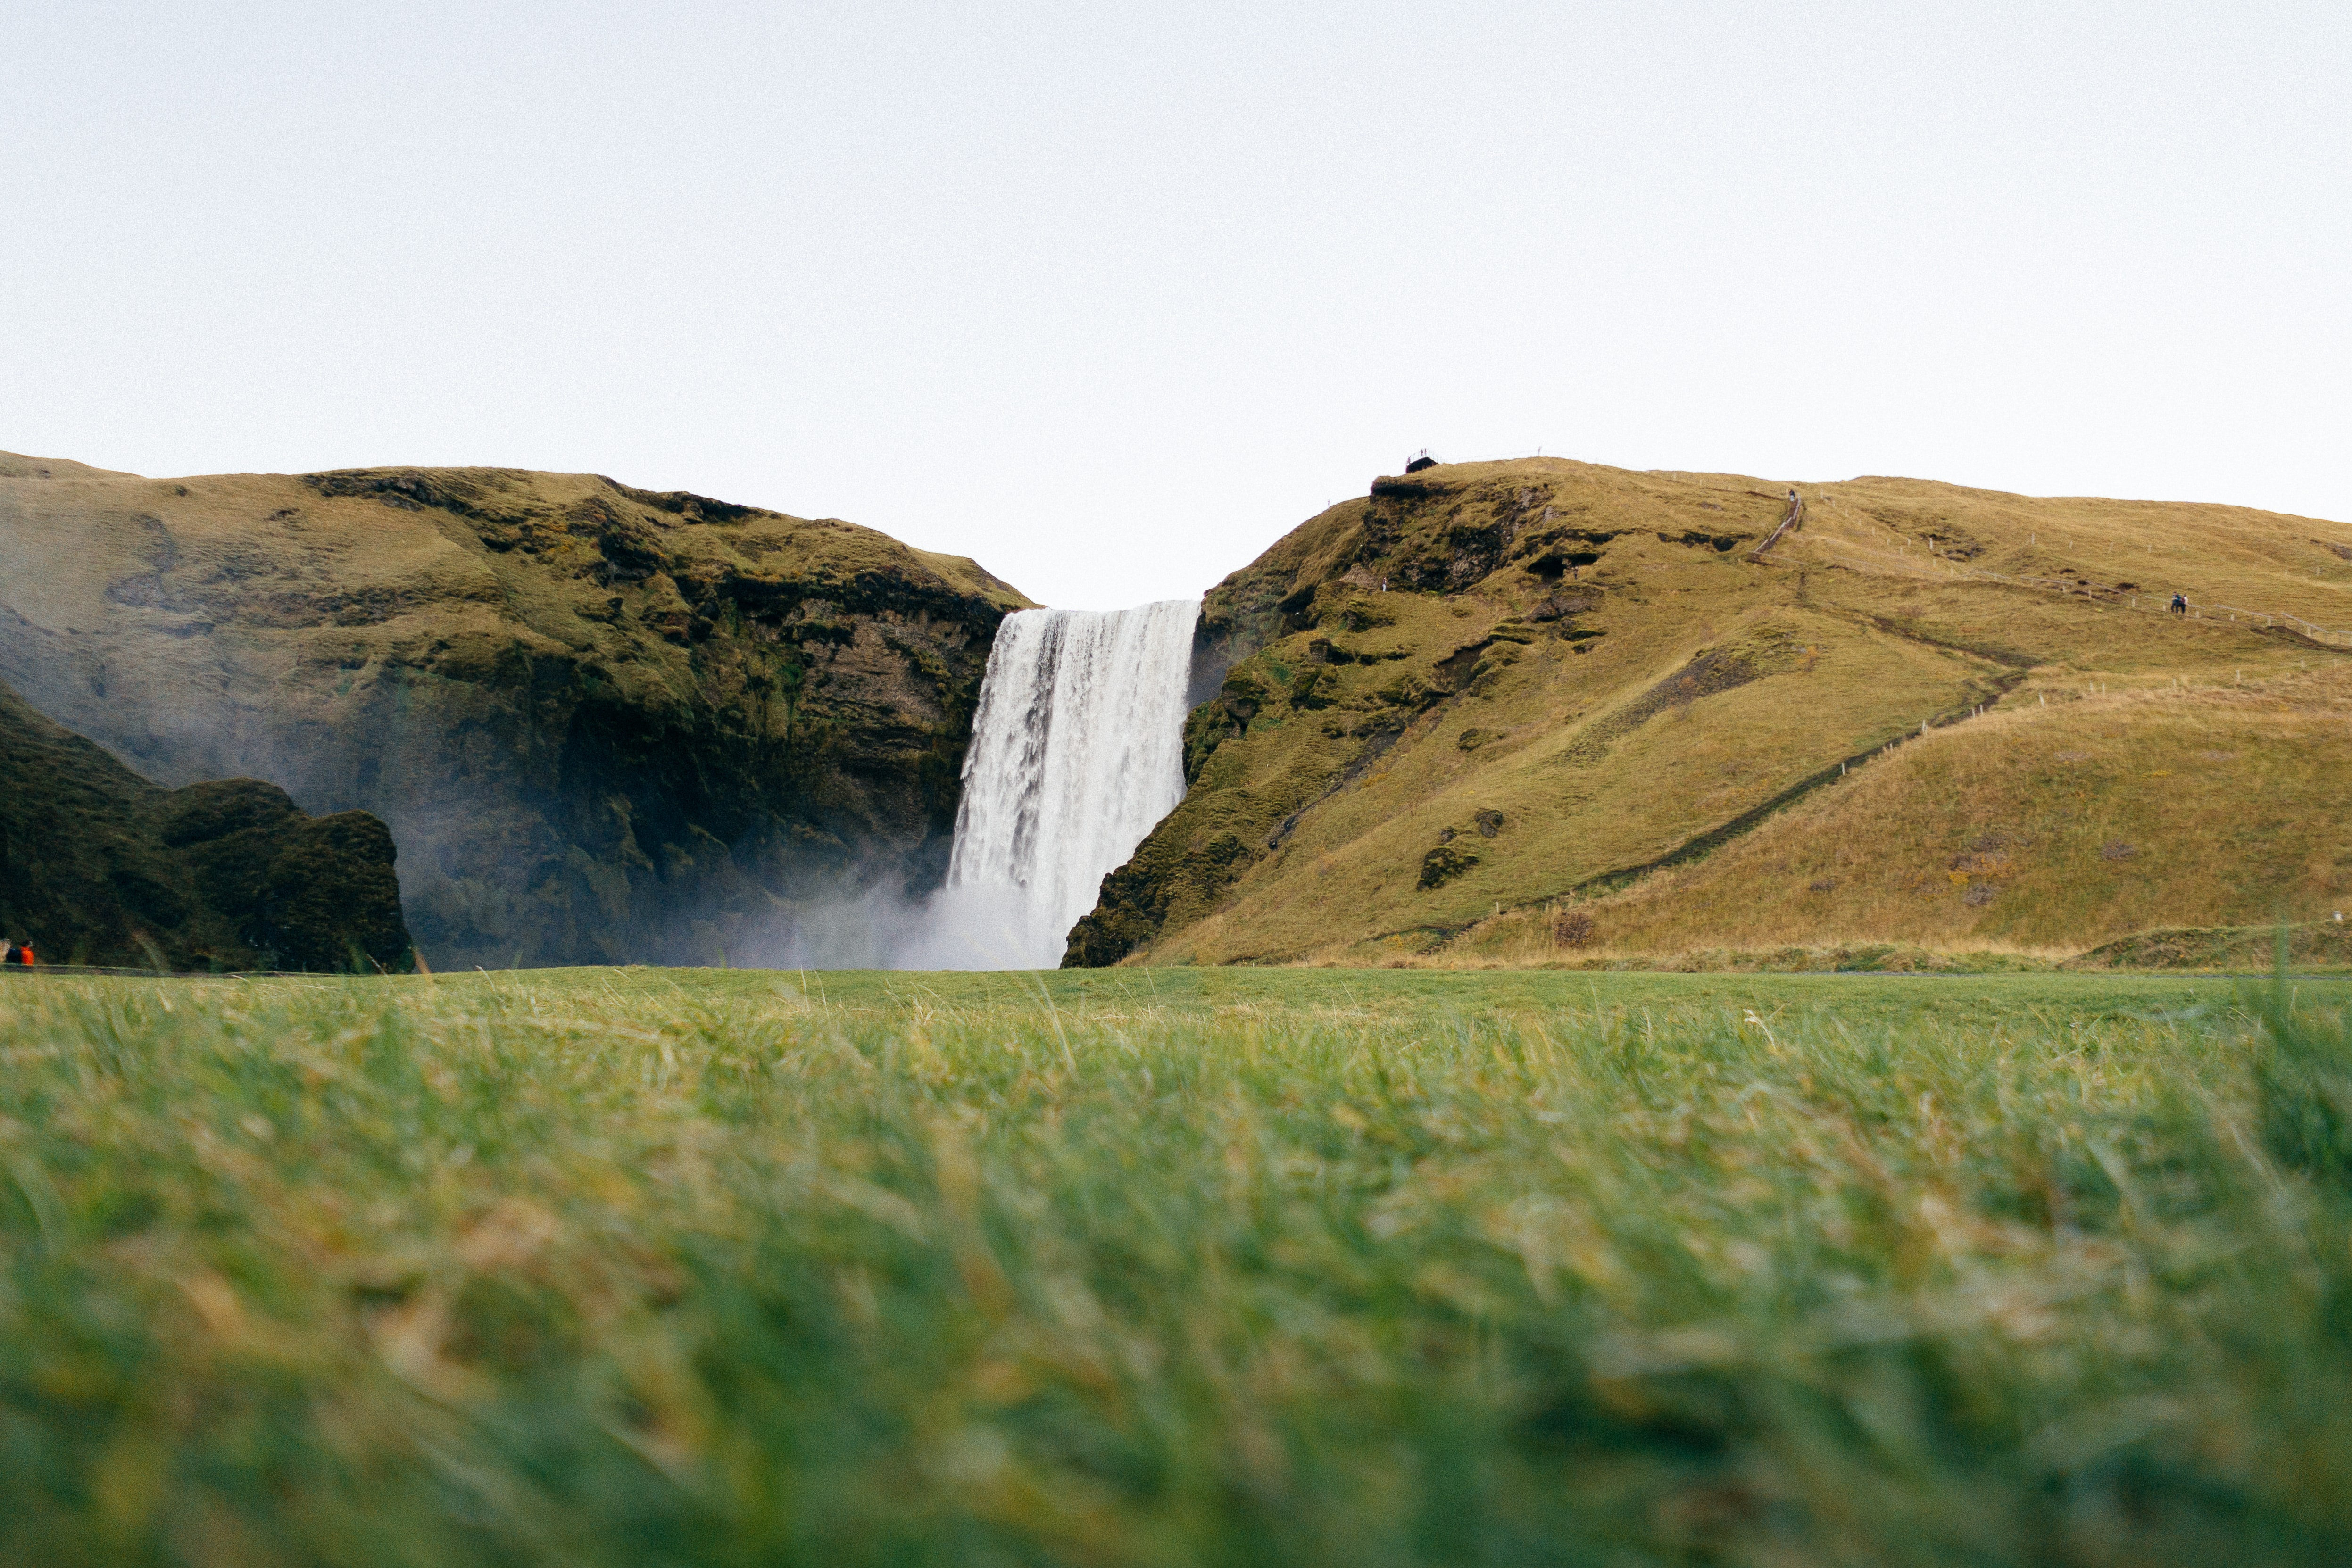 A waterfall tumbling down a mossy hill